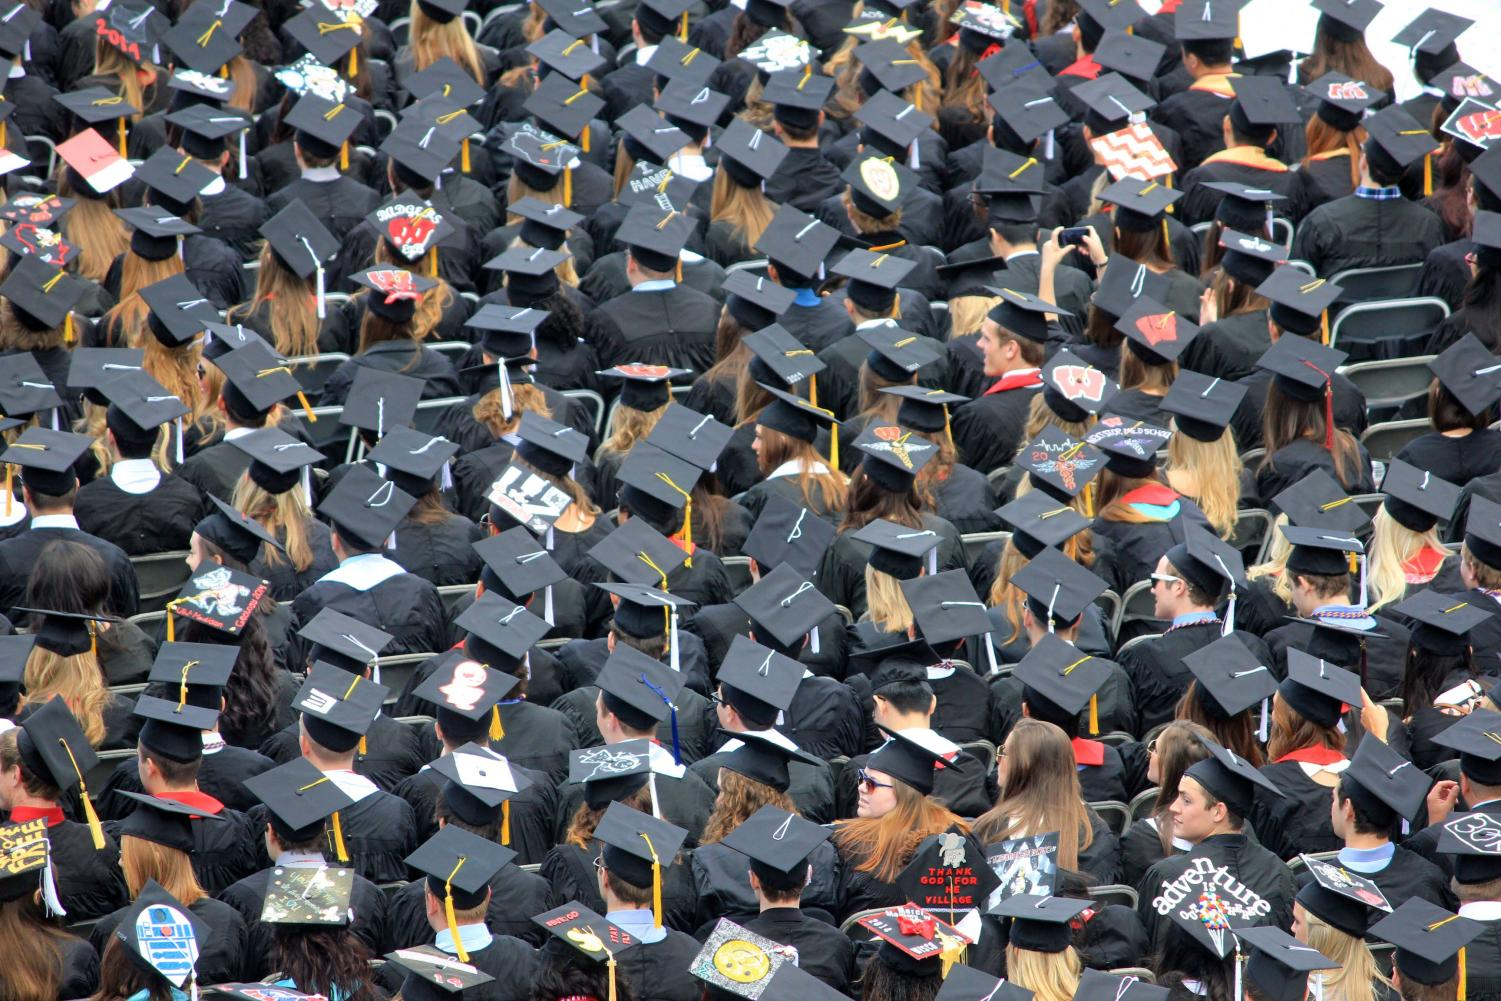 ESI professors said AACC grads should stave positive and prepare to make mistakes as they head into the real world.